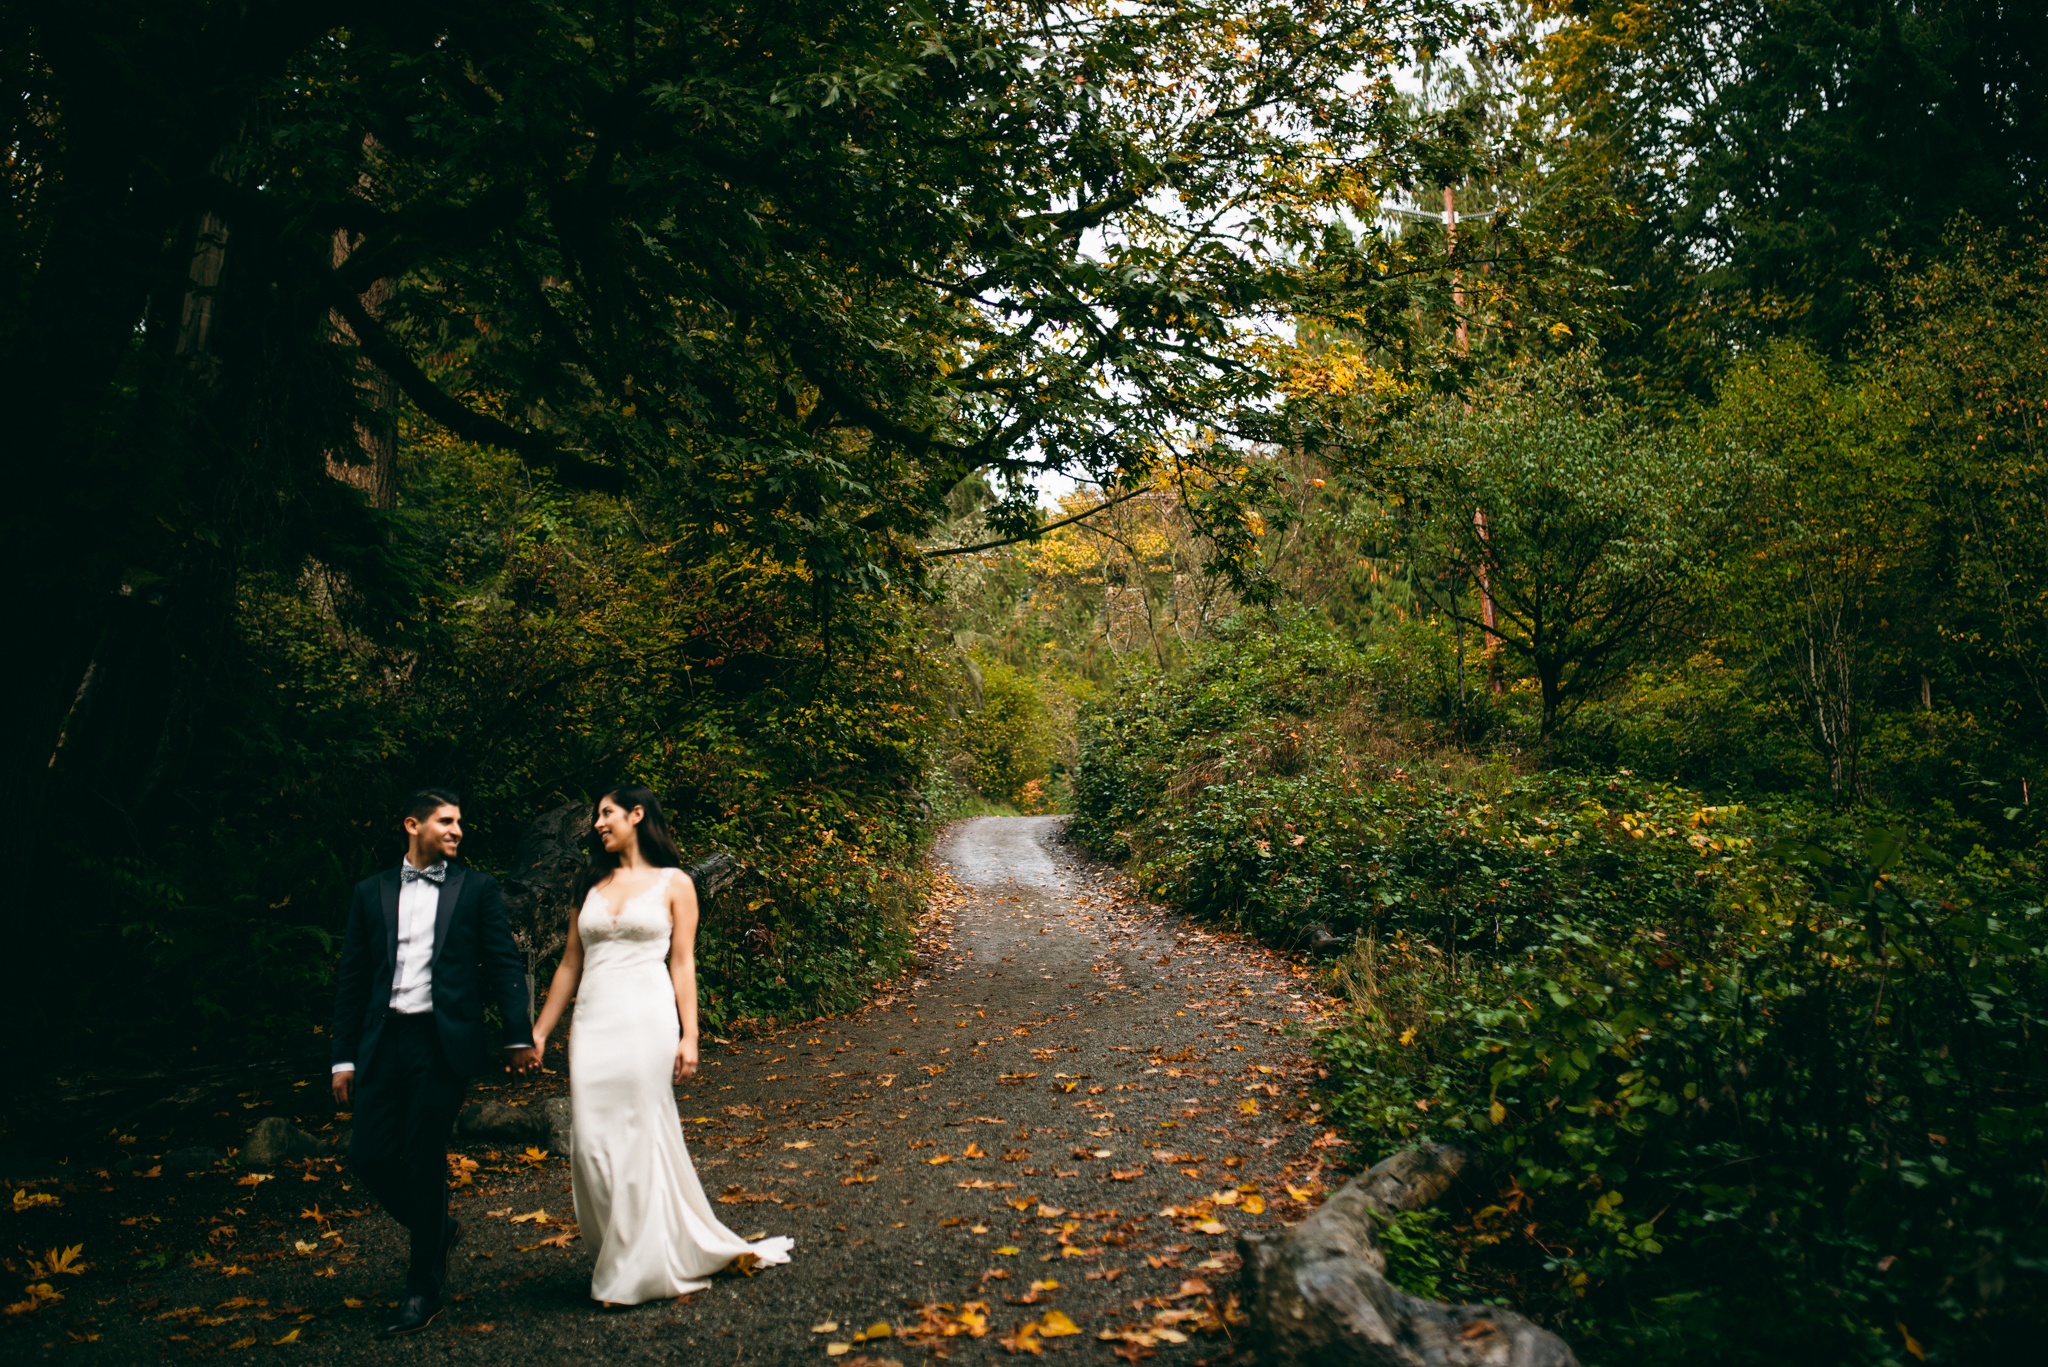 ©Isaiah & Taylor Photography - Los Angeles Wedding - Snoqualmie, Washington Honeymoon-041.jpg